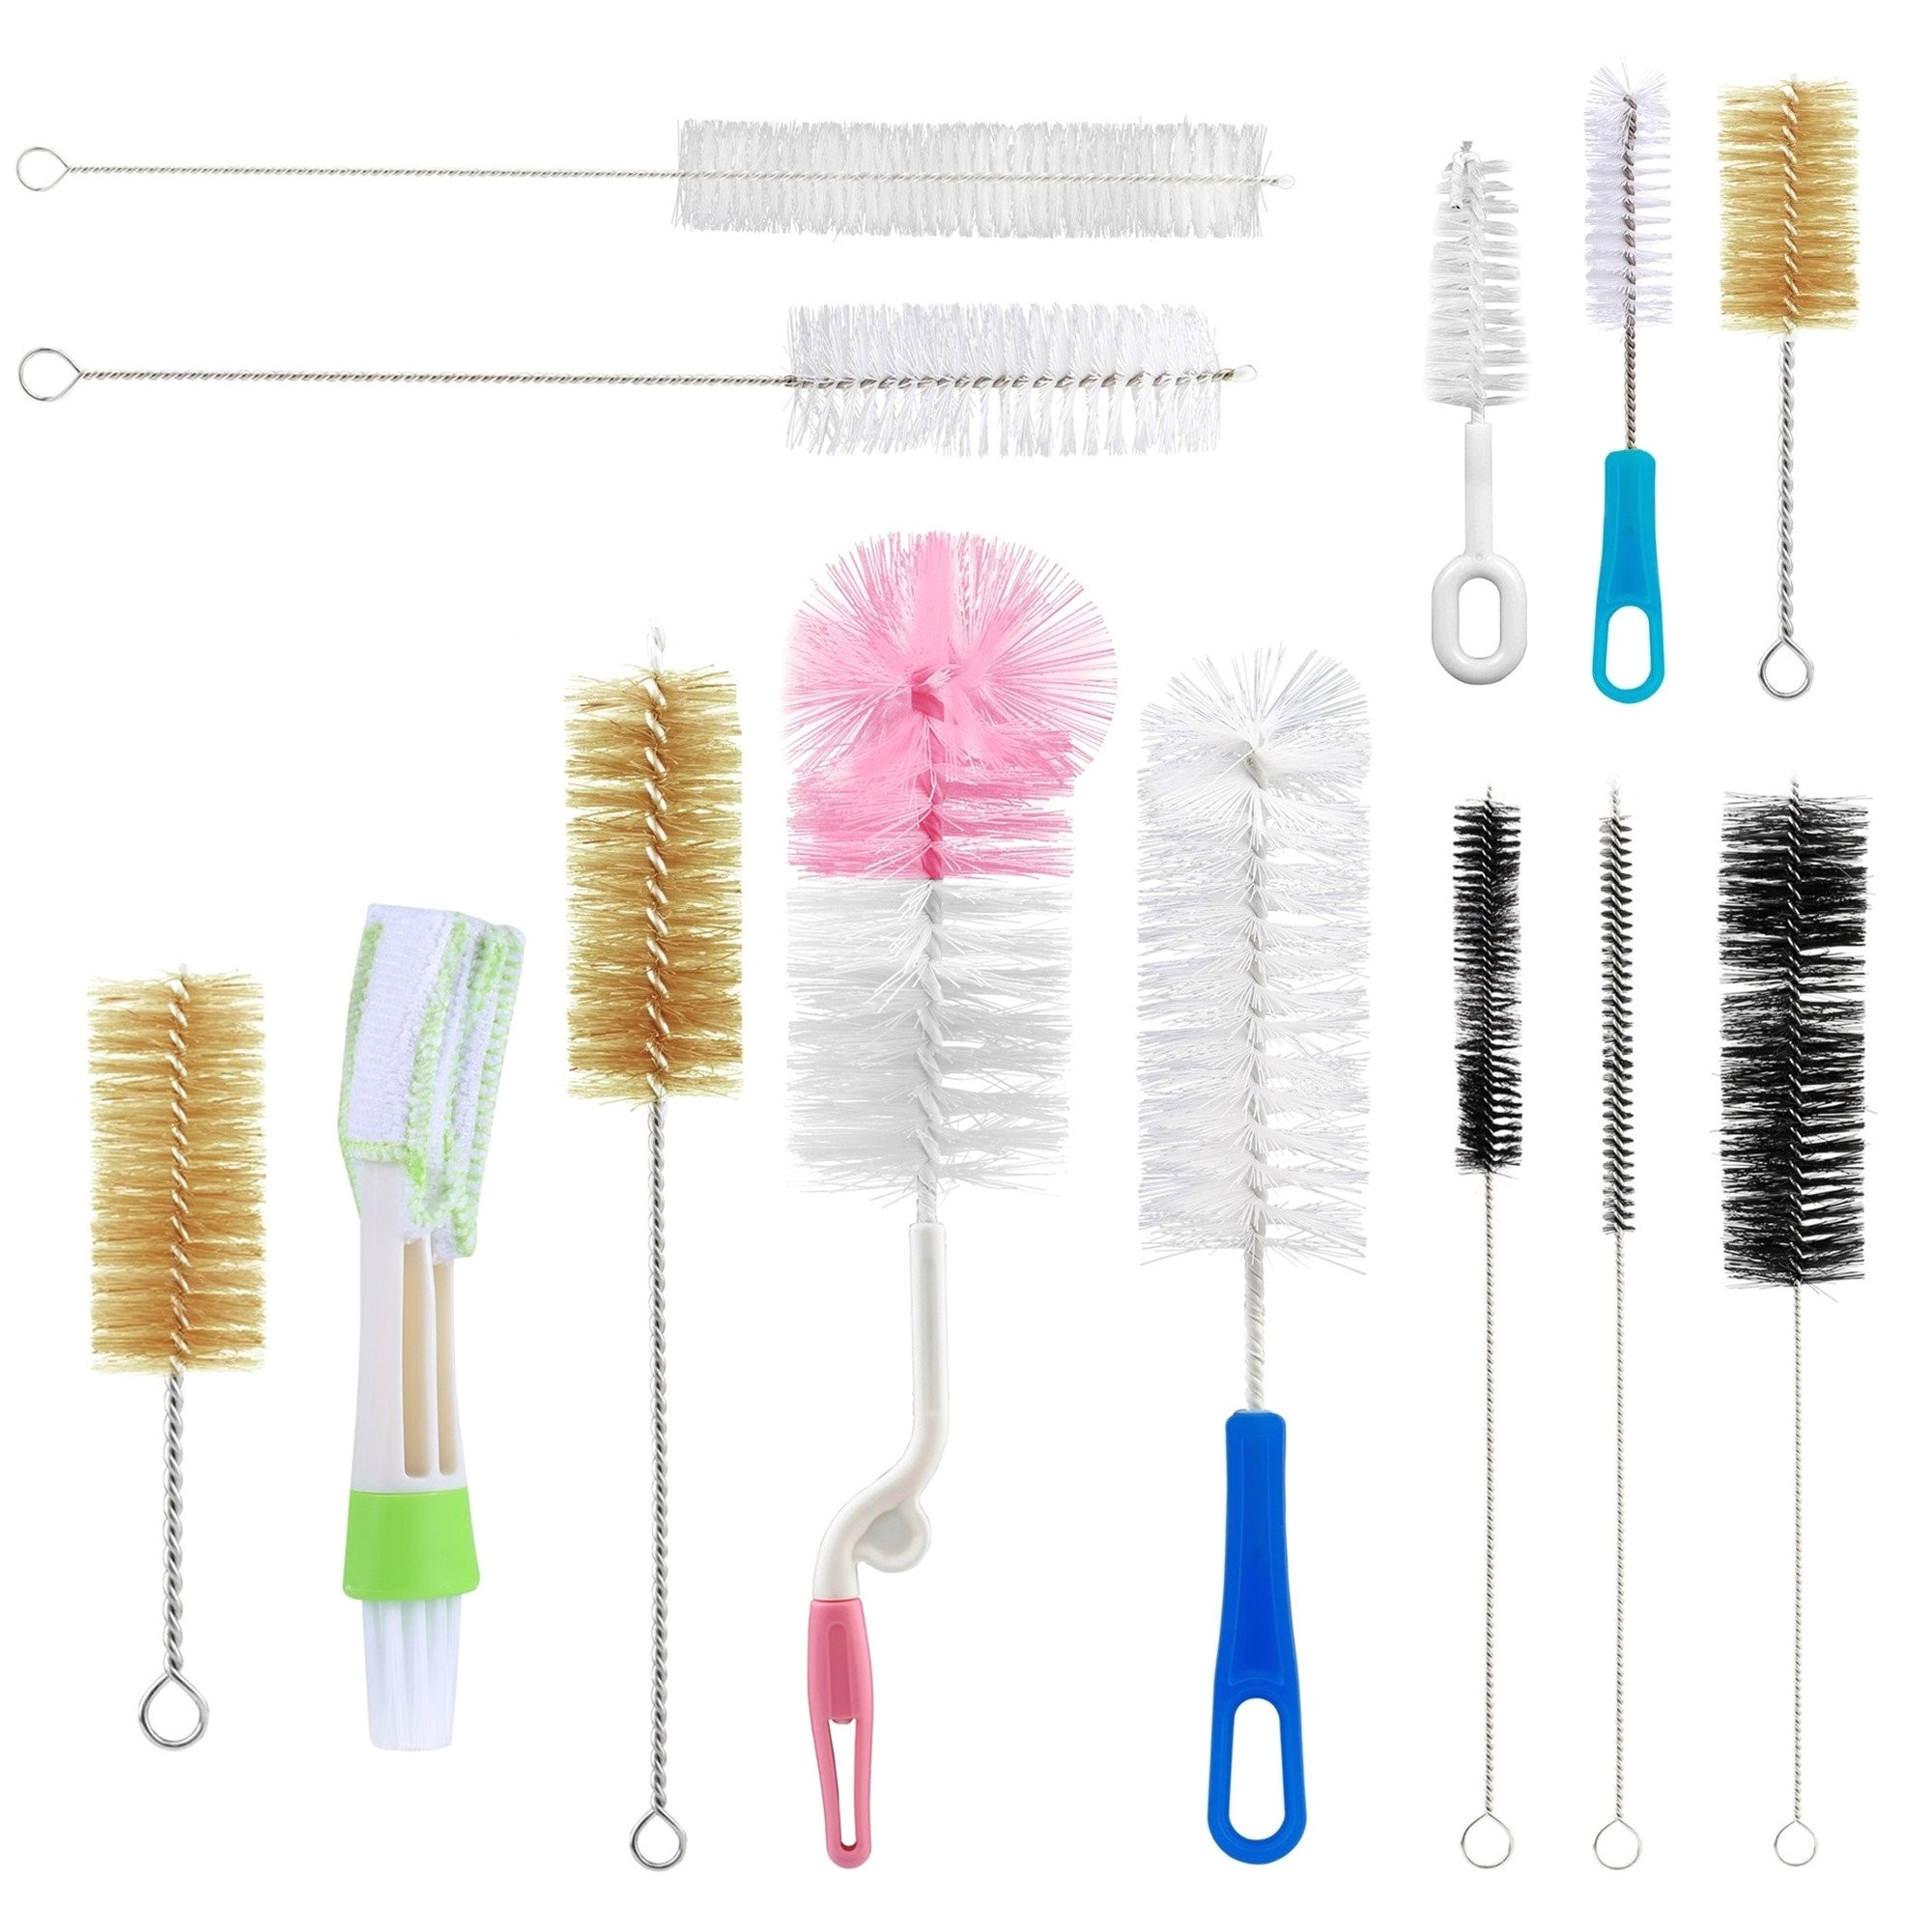 Fuller Brush Products Phone Number Best Rated In Lab Cleaning Brushes Helpful Customer Reviews